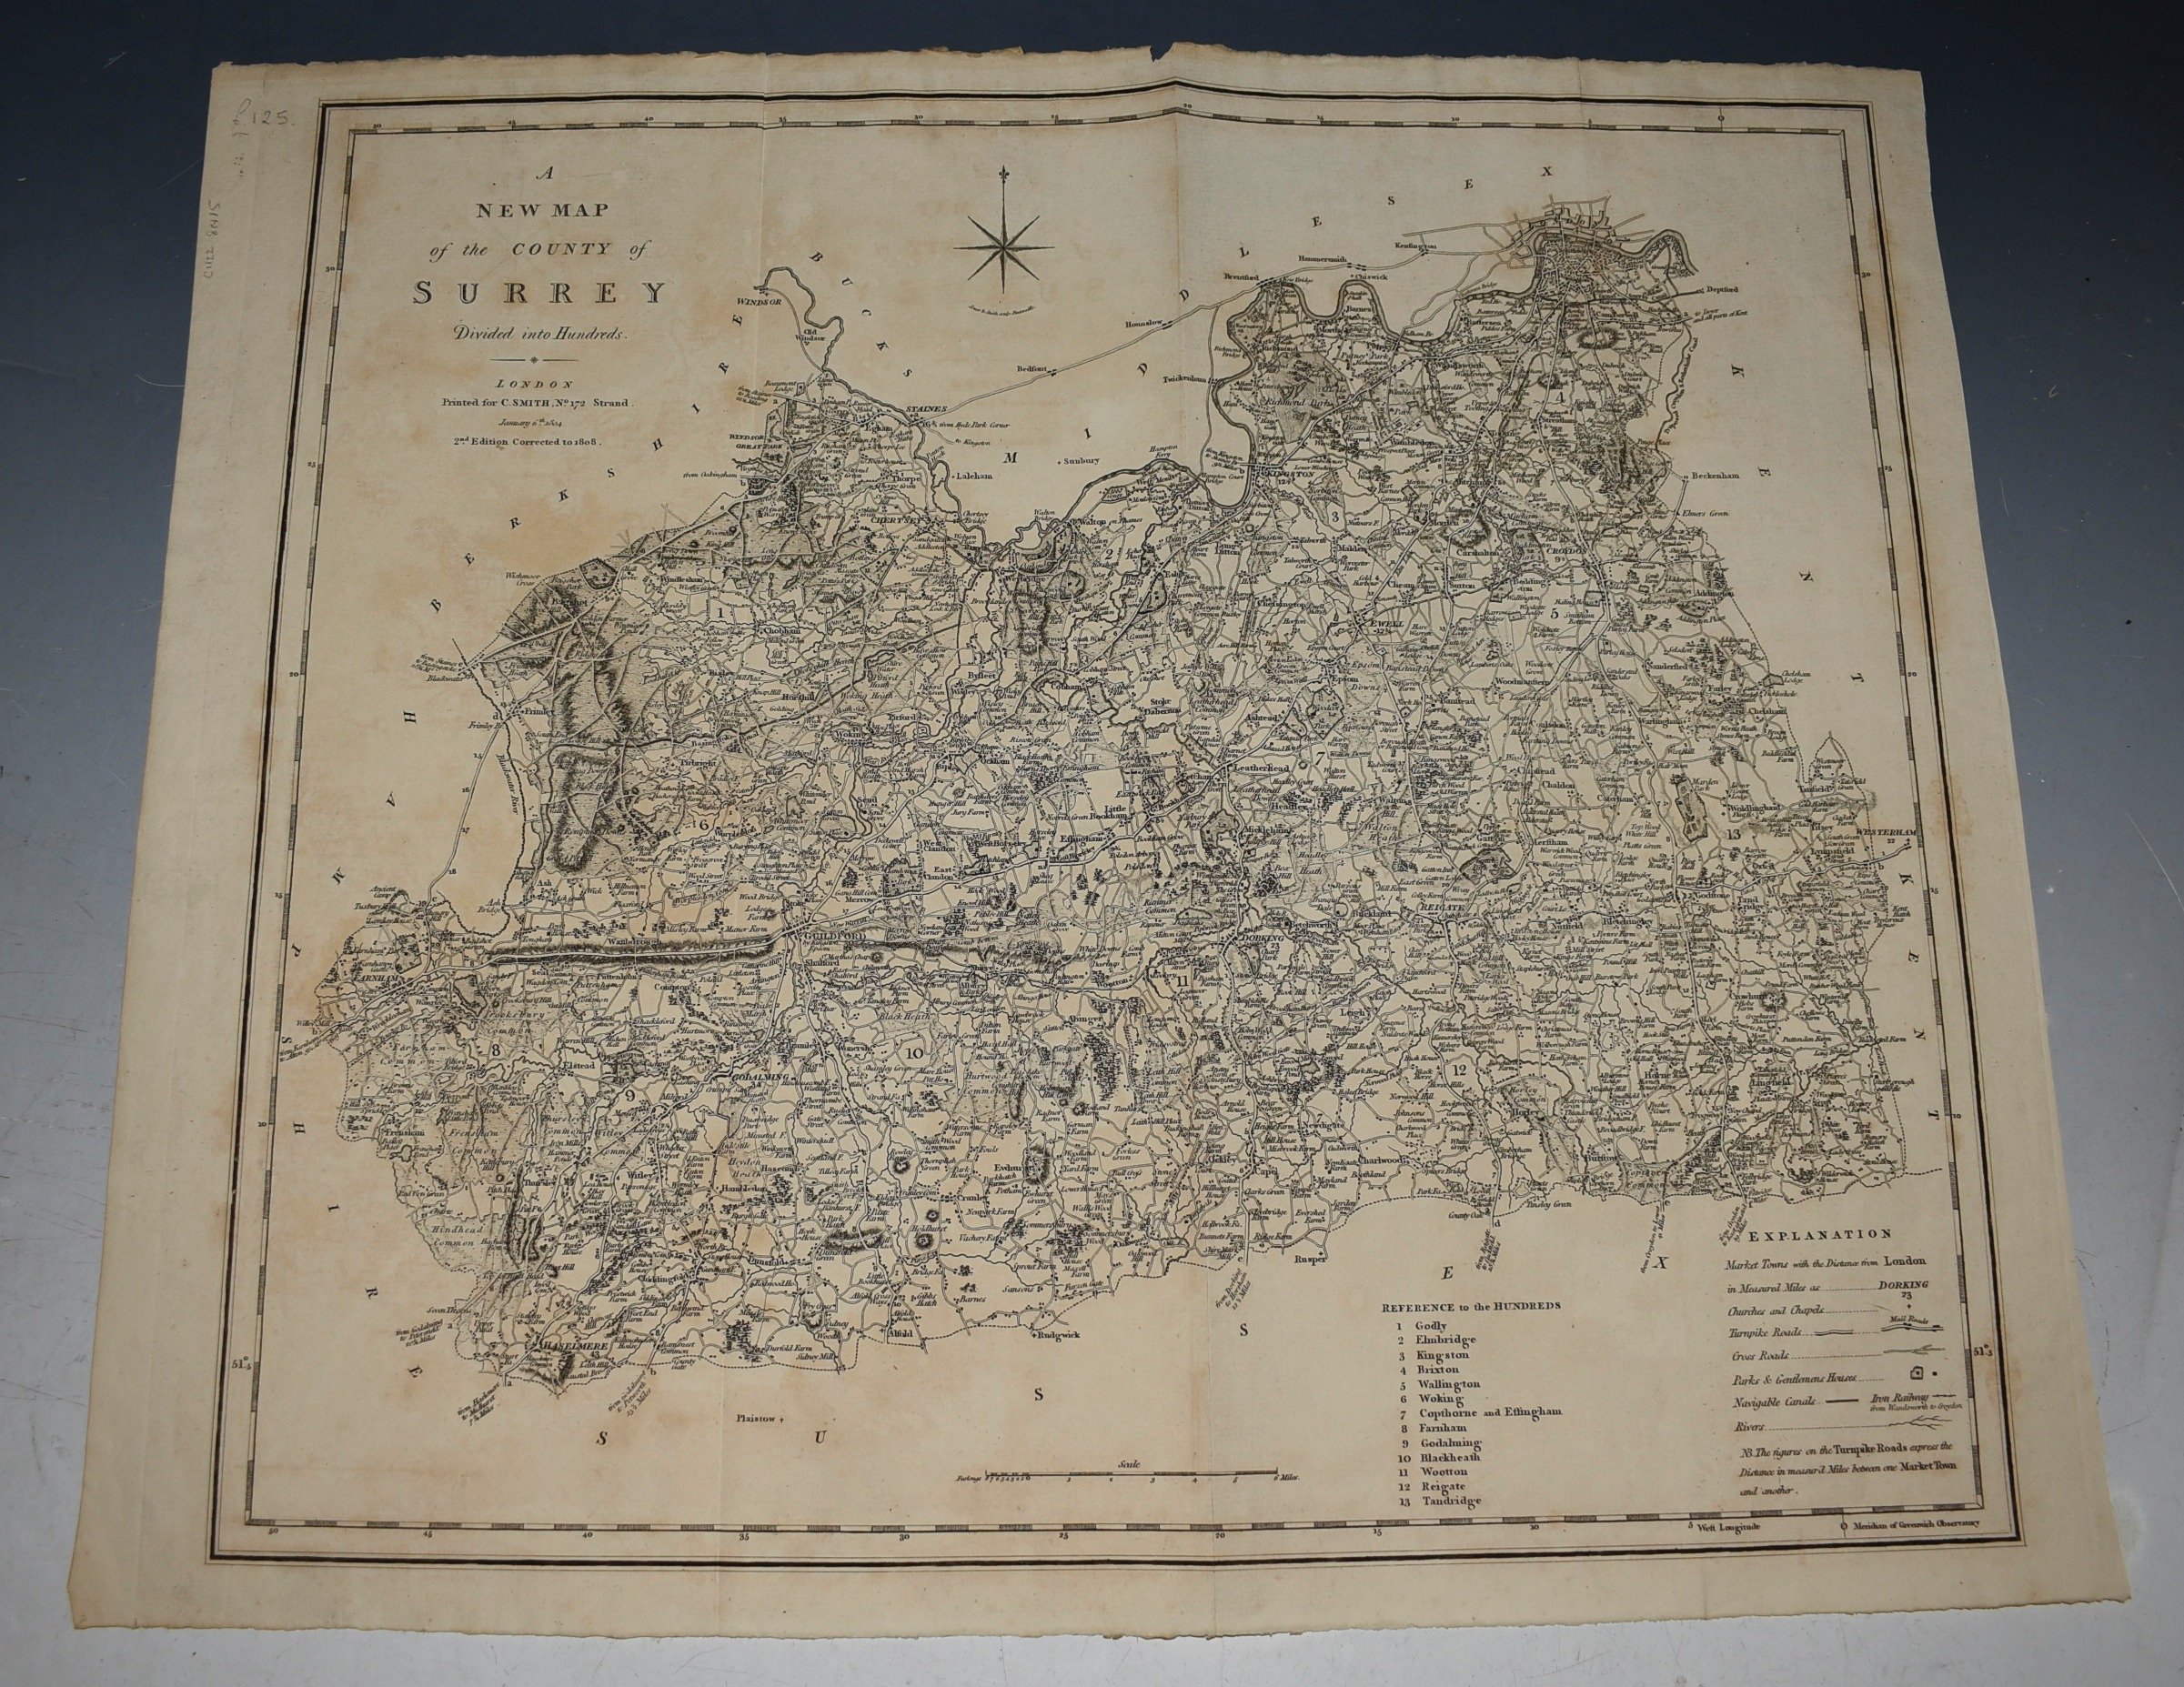 Image for ORIGINAL ENGRAVED ANTIQUE MAP OF SURREY Surrey divided into hundreds and showing roads, rivers, parks, canals and also the iron railway between Wandsworth and Croydon ( this was a horse drawn railway before steam)